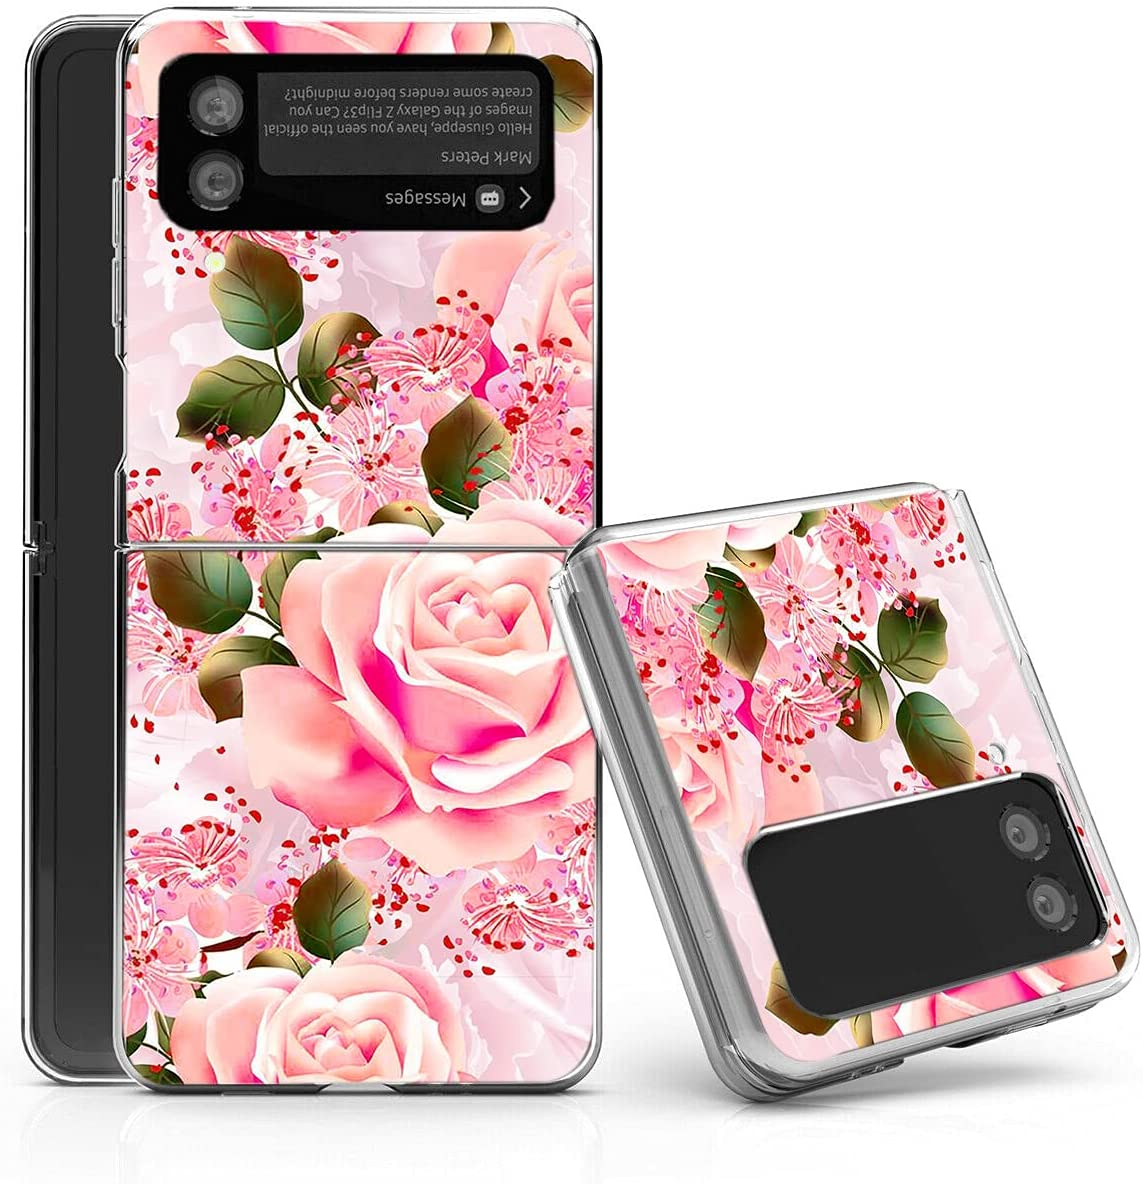 Galaxy Z Flip 3 5G Case,Bcov Pink Rose Flowers Anti-Scratch Solid Hard case Protective Shookproof Phone Cover for Samsung Galaxy Z Flip 3 5G